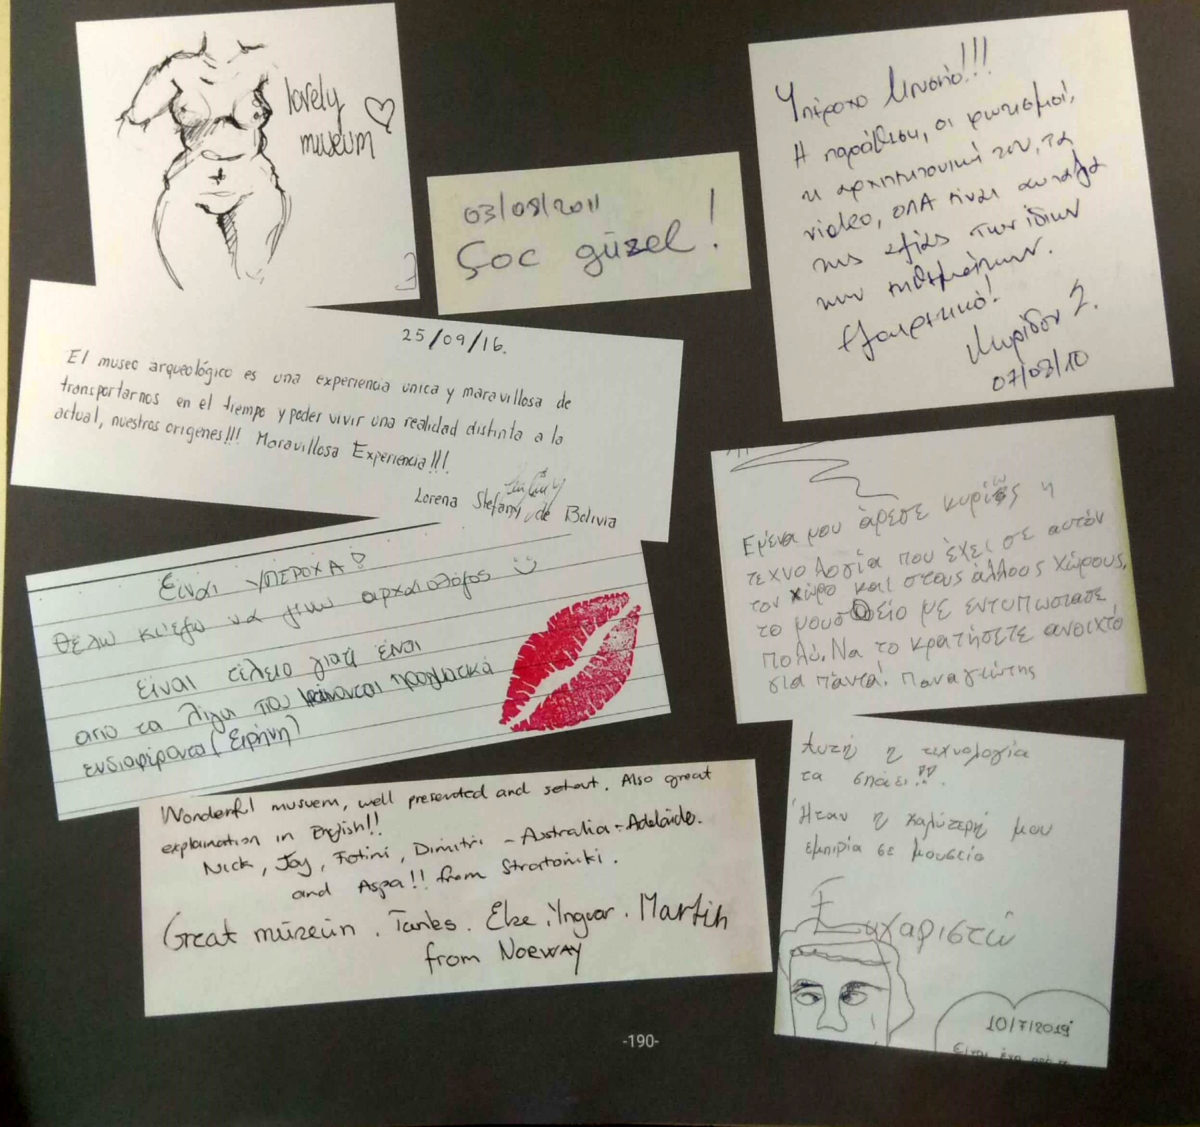 Visitors' impressions from the anniversary album